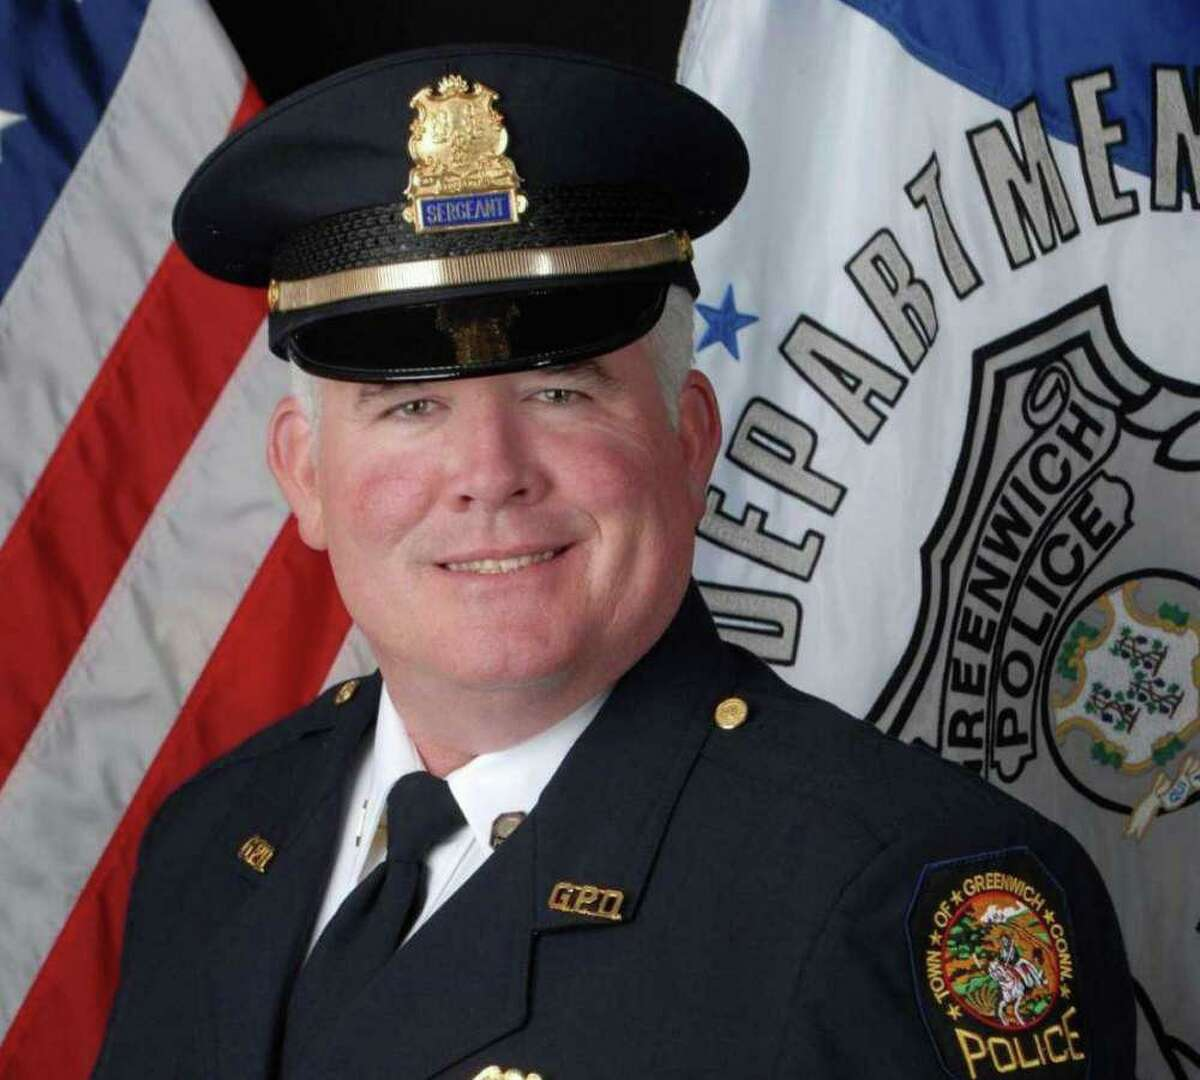 Joseph Ryan retired from the Greenwich Police Department in July 2019. A Trumbull resident, he pleaded guilty to a federal gun charge.